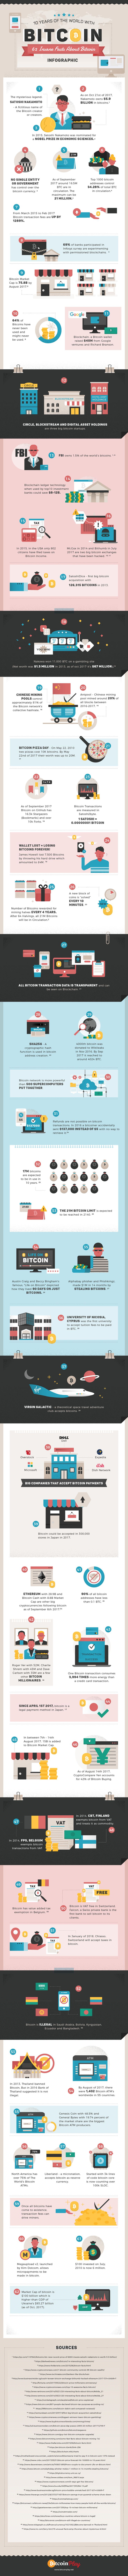 62 Amazing Facts and Statistics about Bitcoin [Infographic]